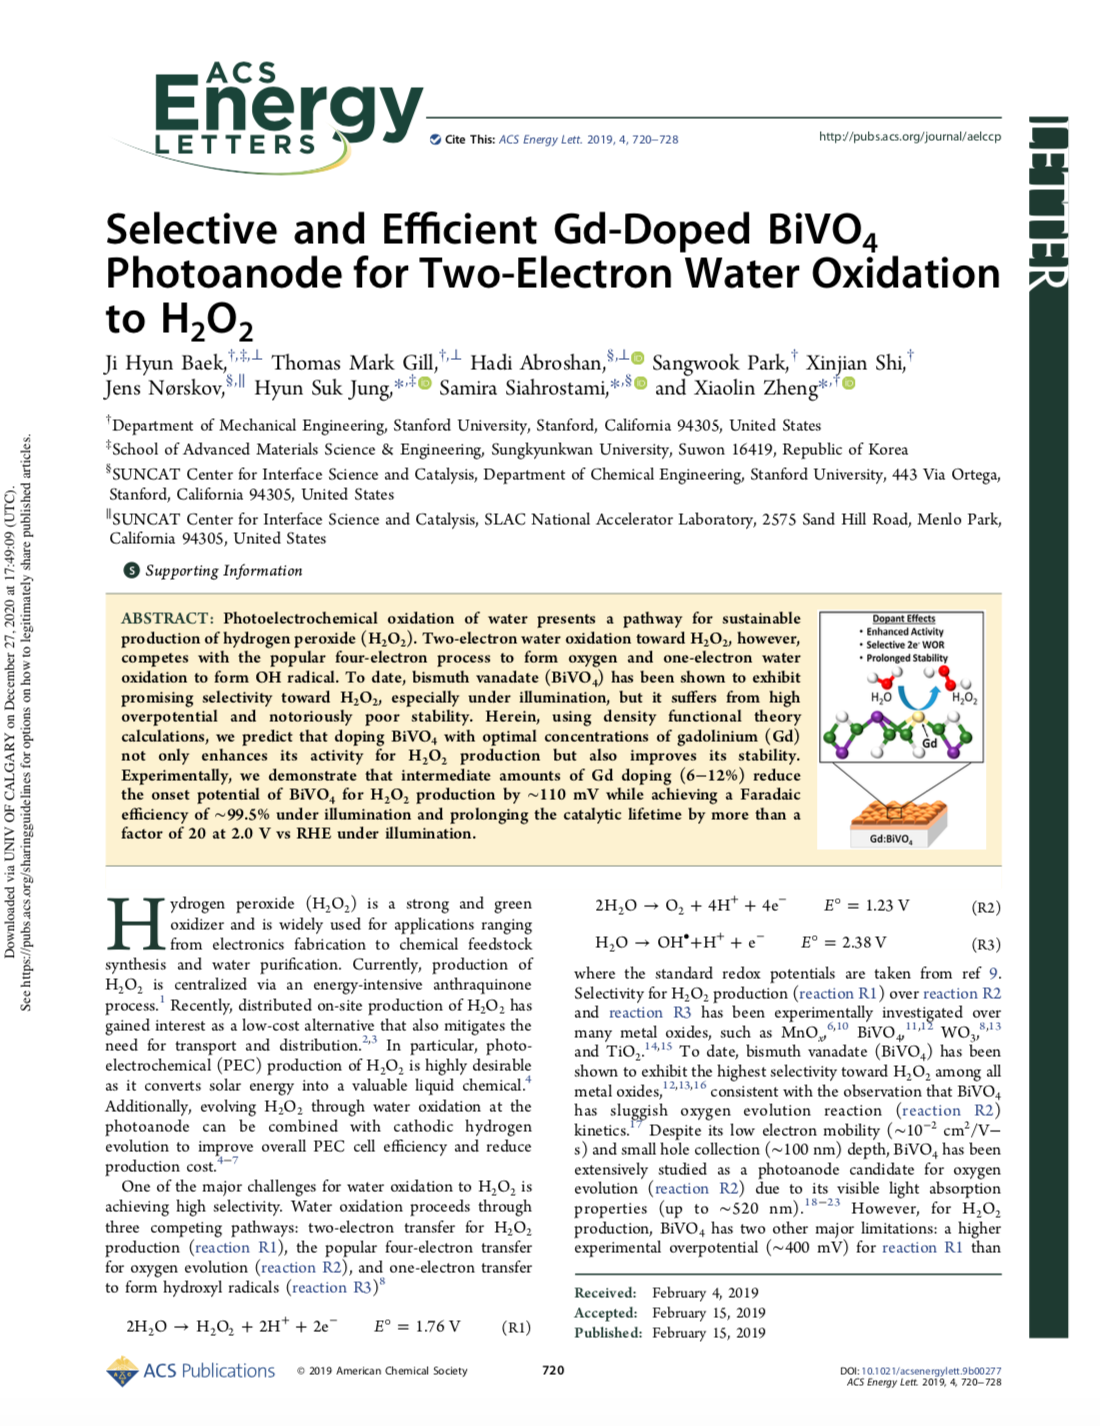 Selective and Efficient Gd-Doped BiVO4 Photoanode for Two-Electron Water Oxidation to H2O2